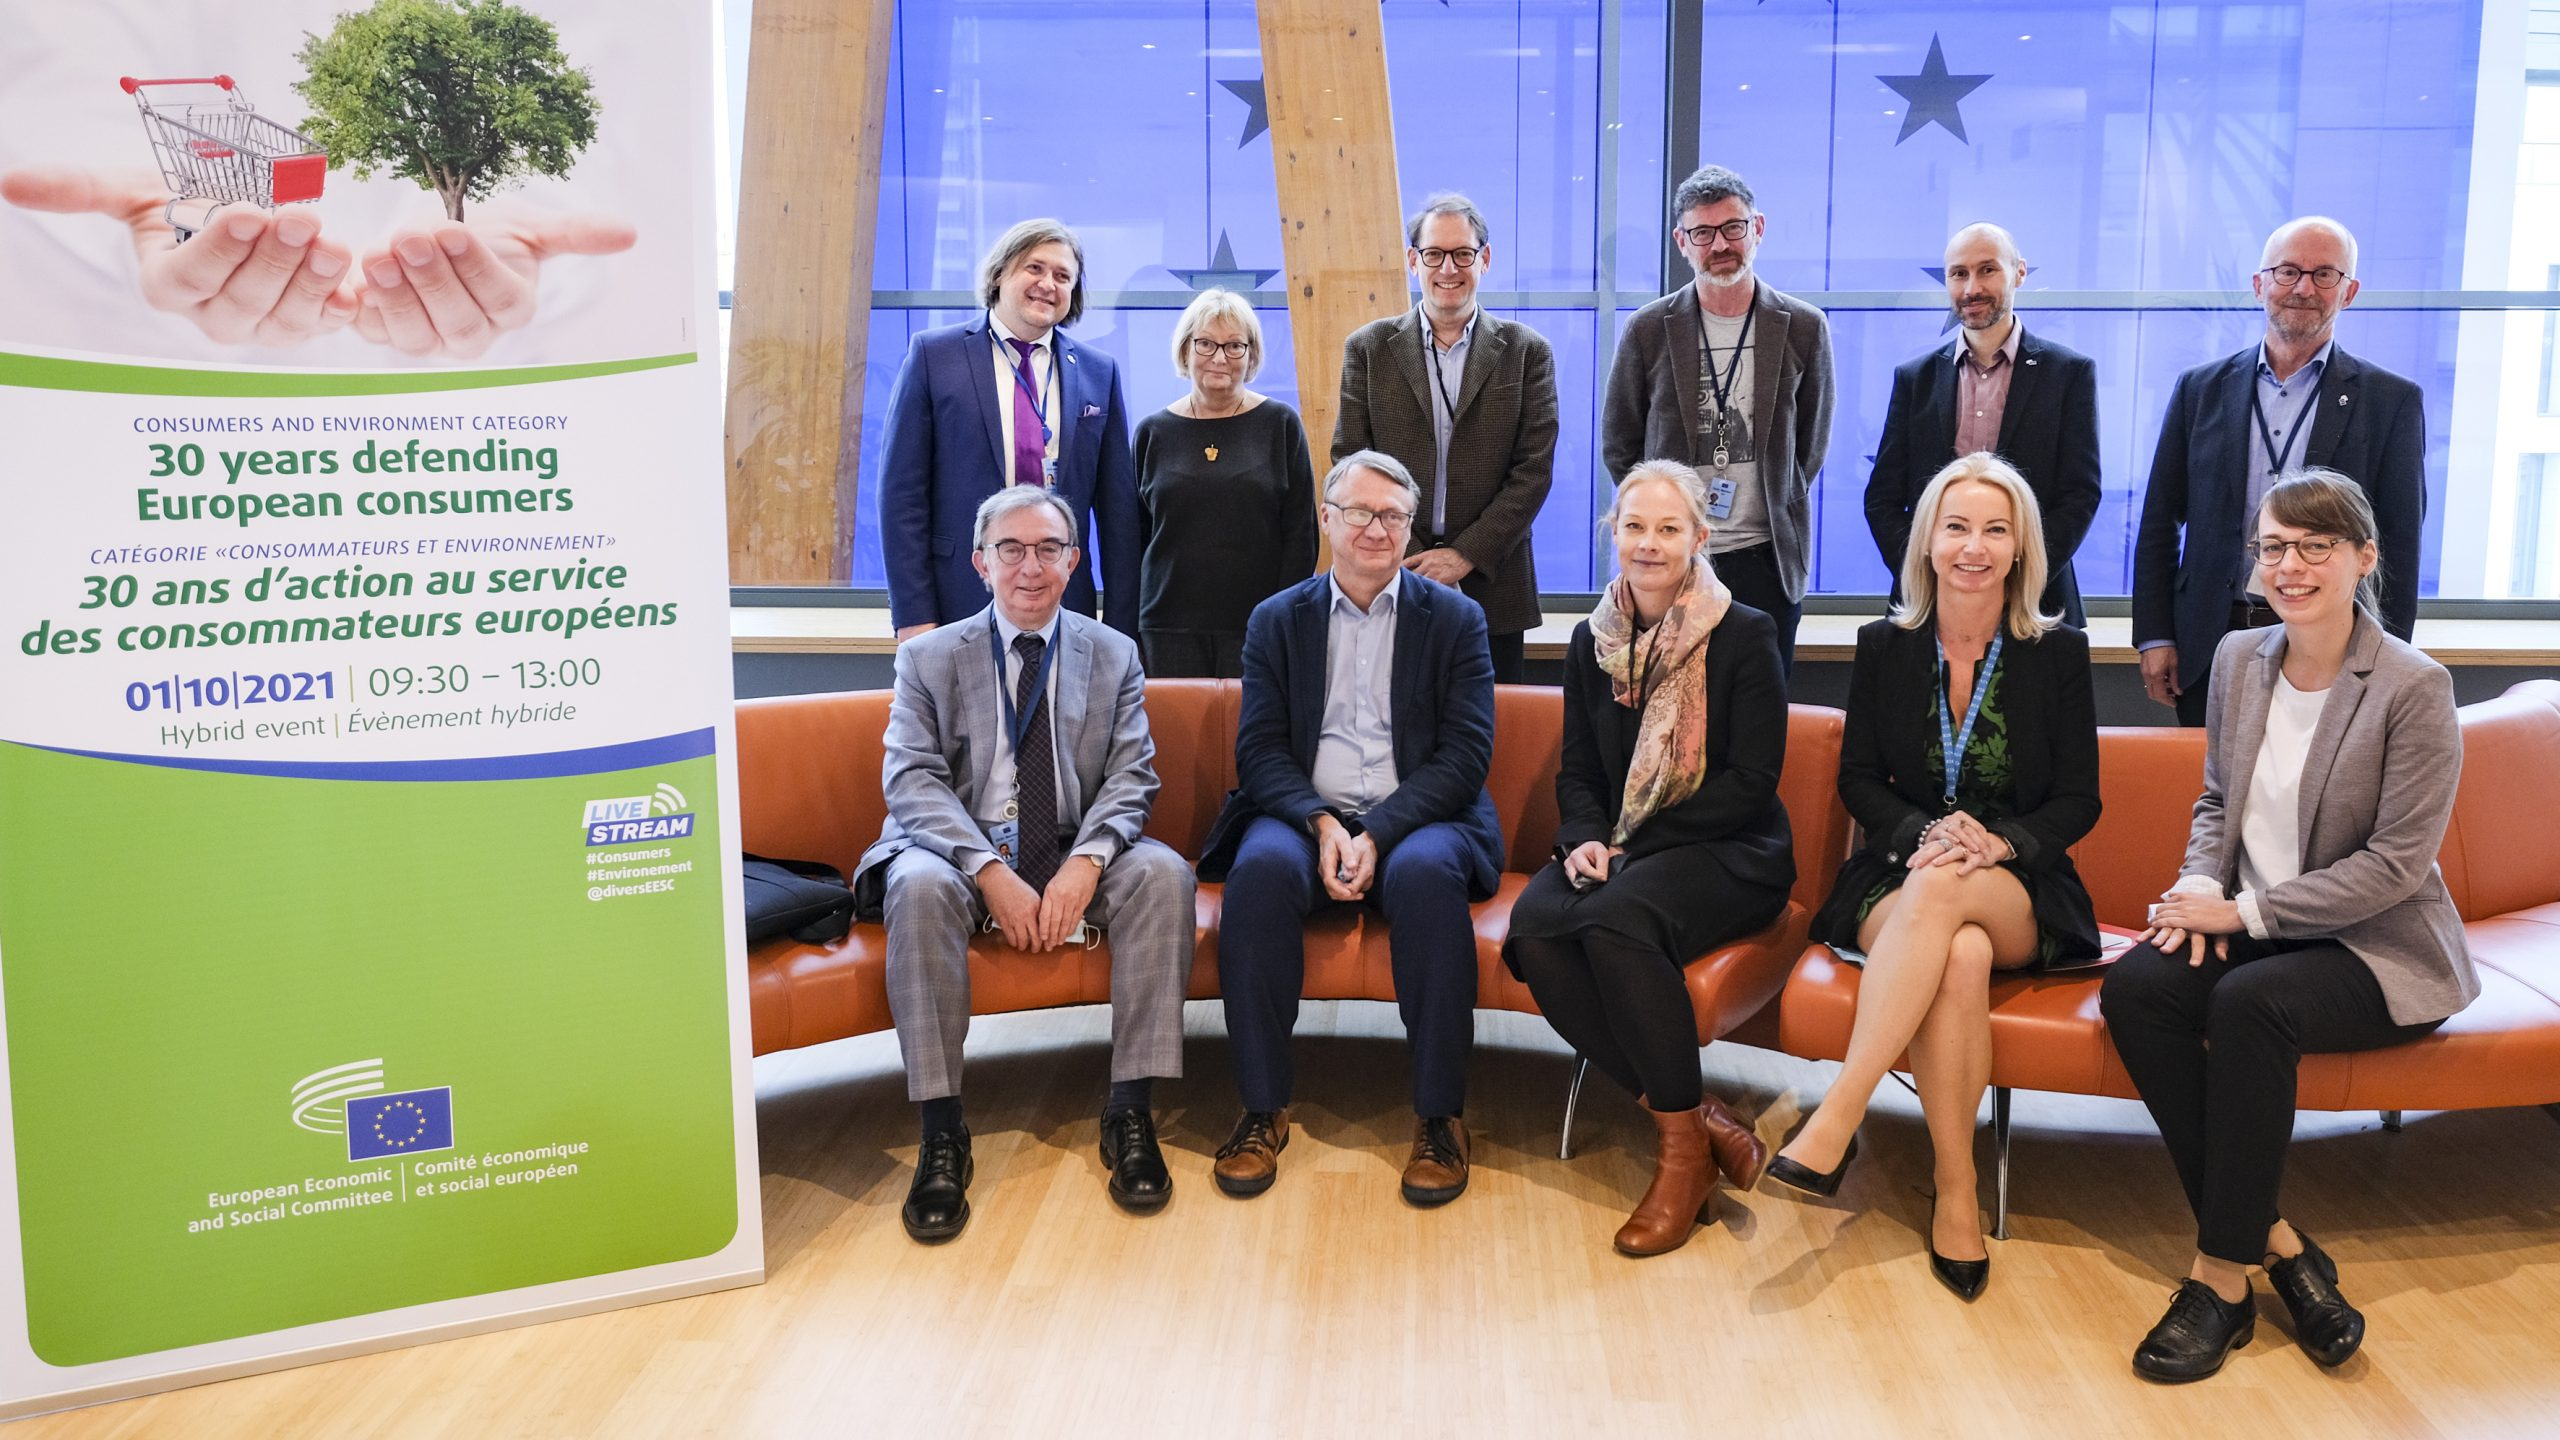 EESC defending consumers for 30 years